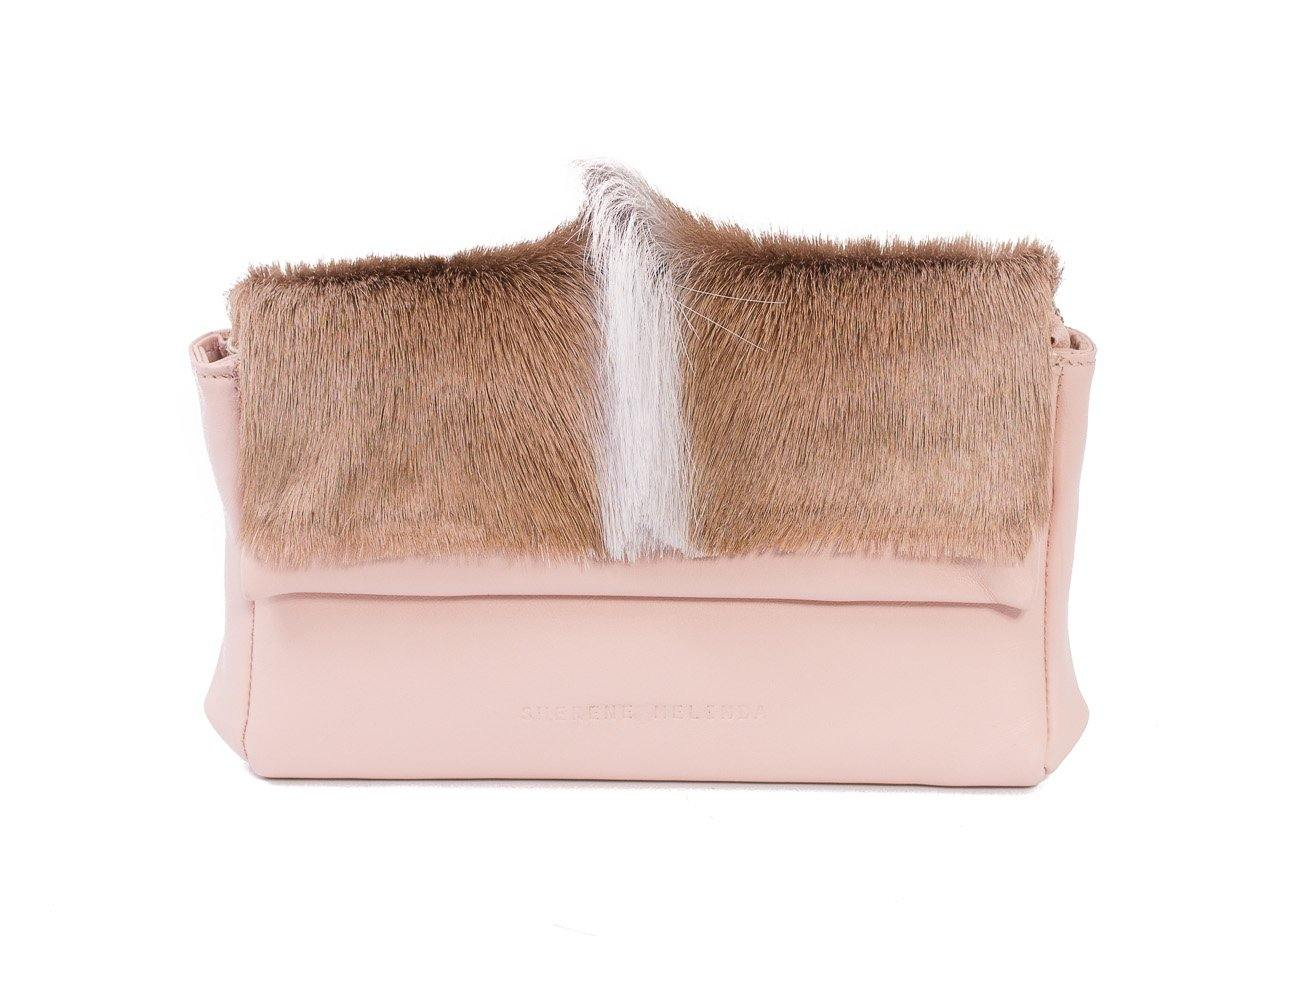 sherene melinda springbok hair-on-hide nude leather Sophy SS18 Clutch Bag fan front strap